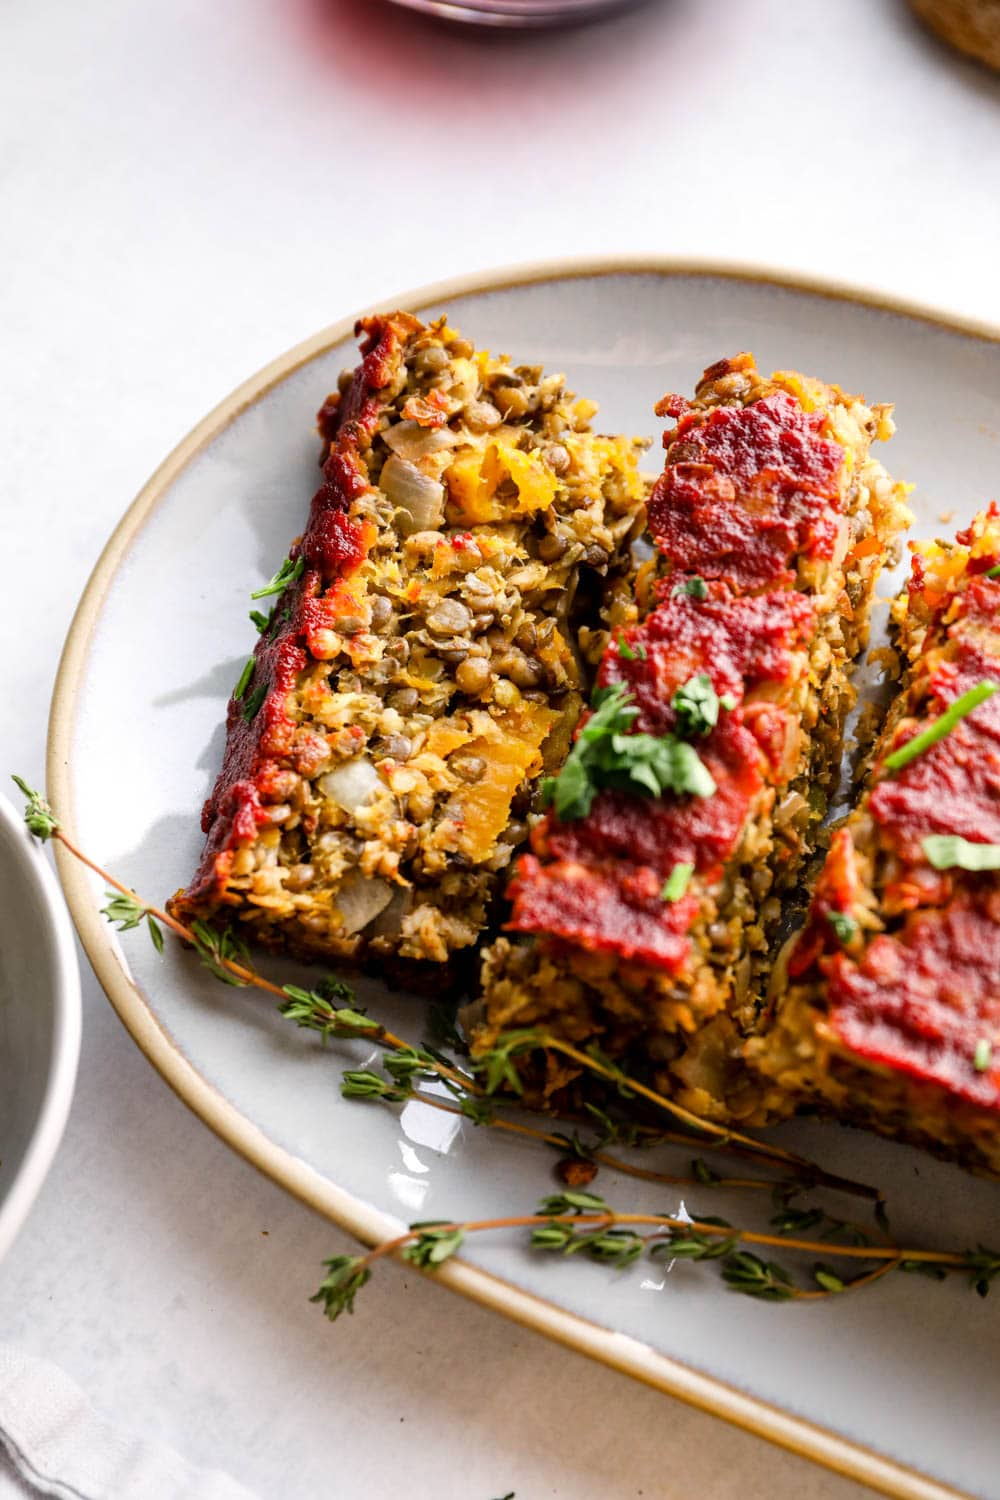 Butternut Squash Lentil Loaf cut into slices and topped with herbs.